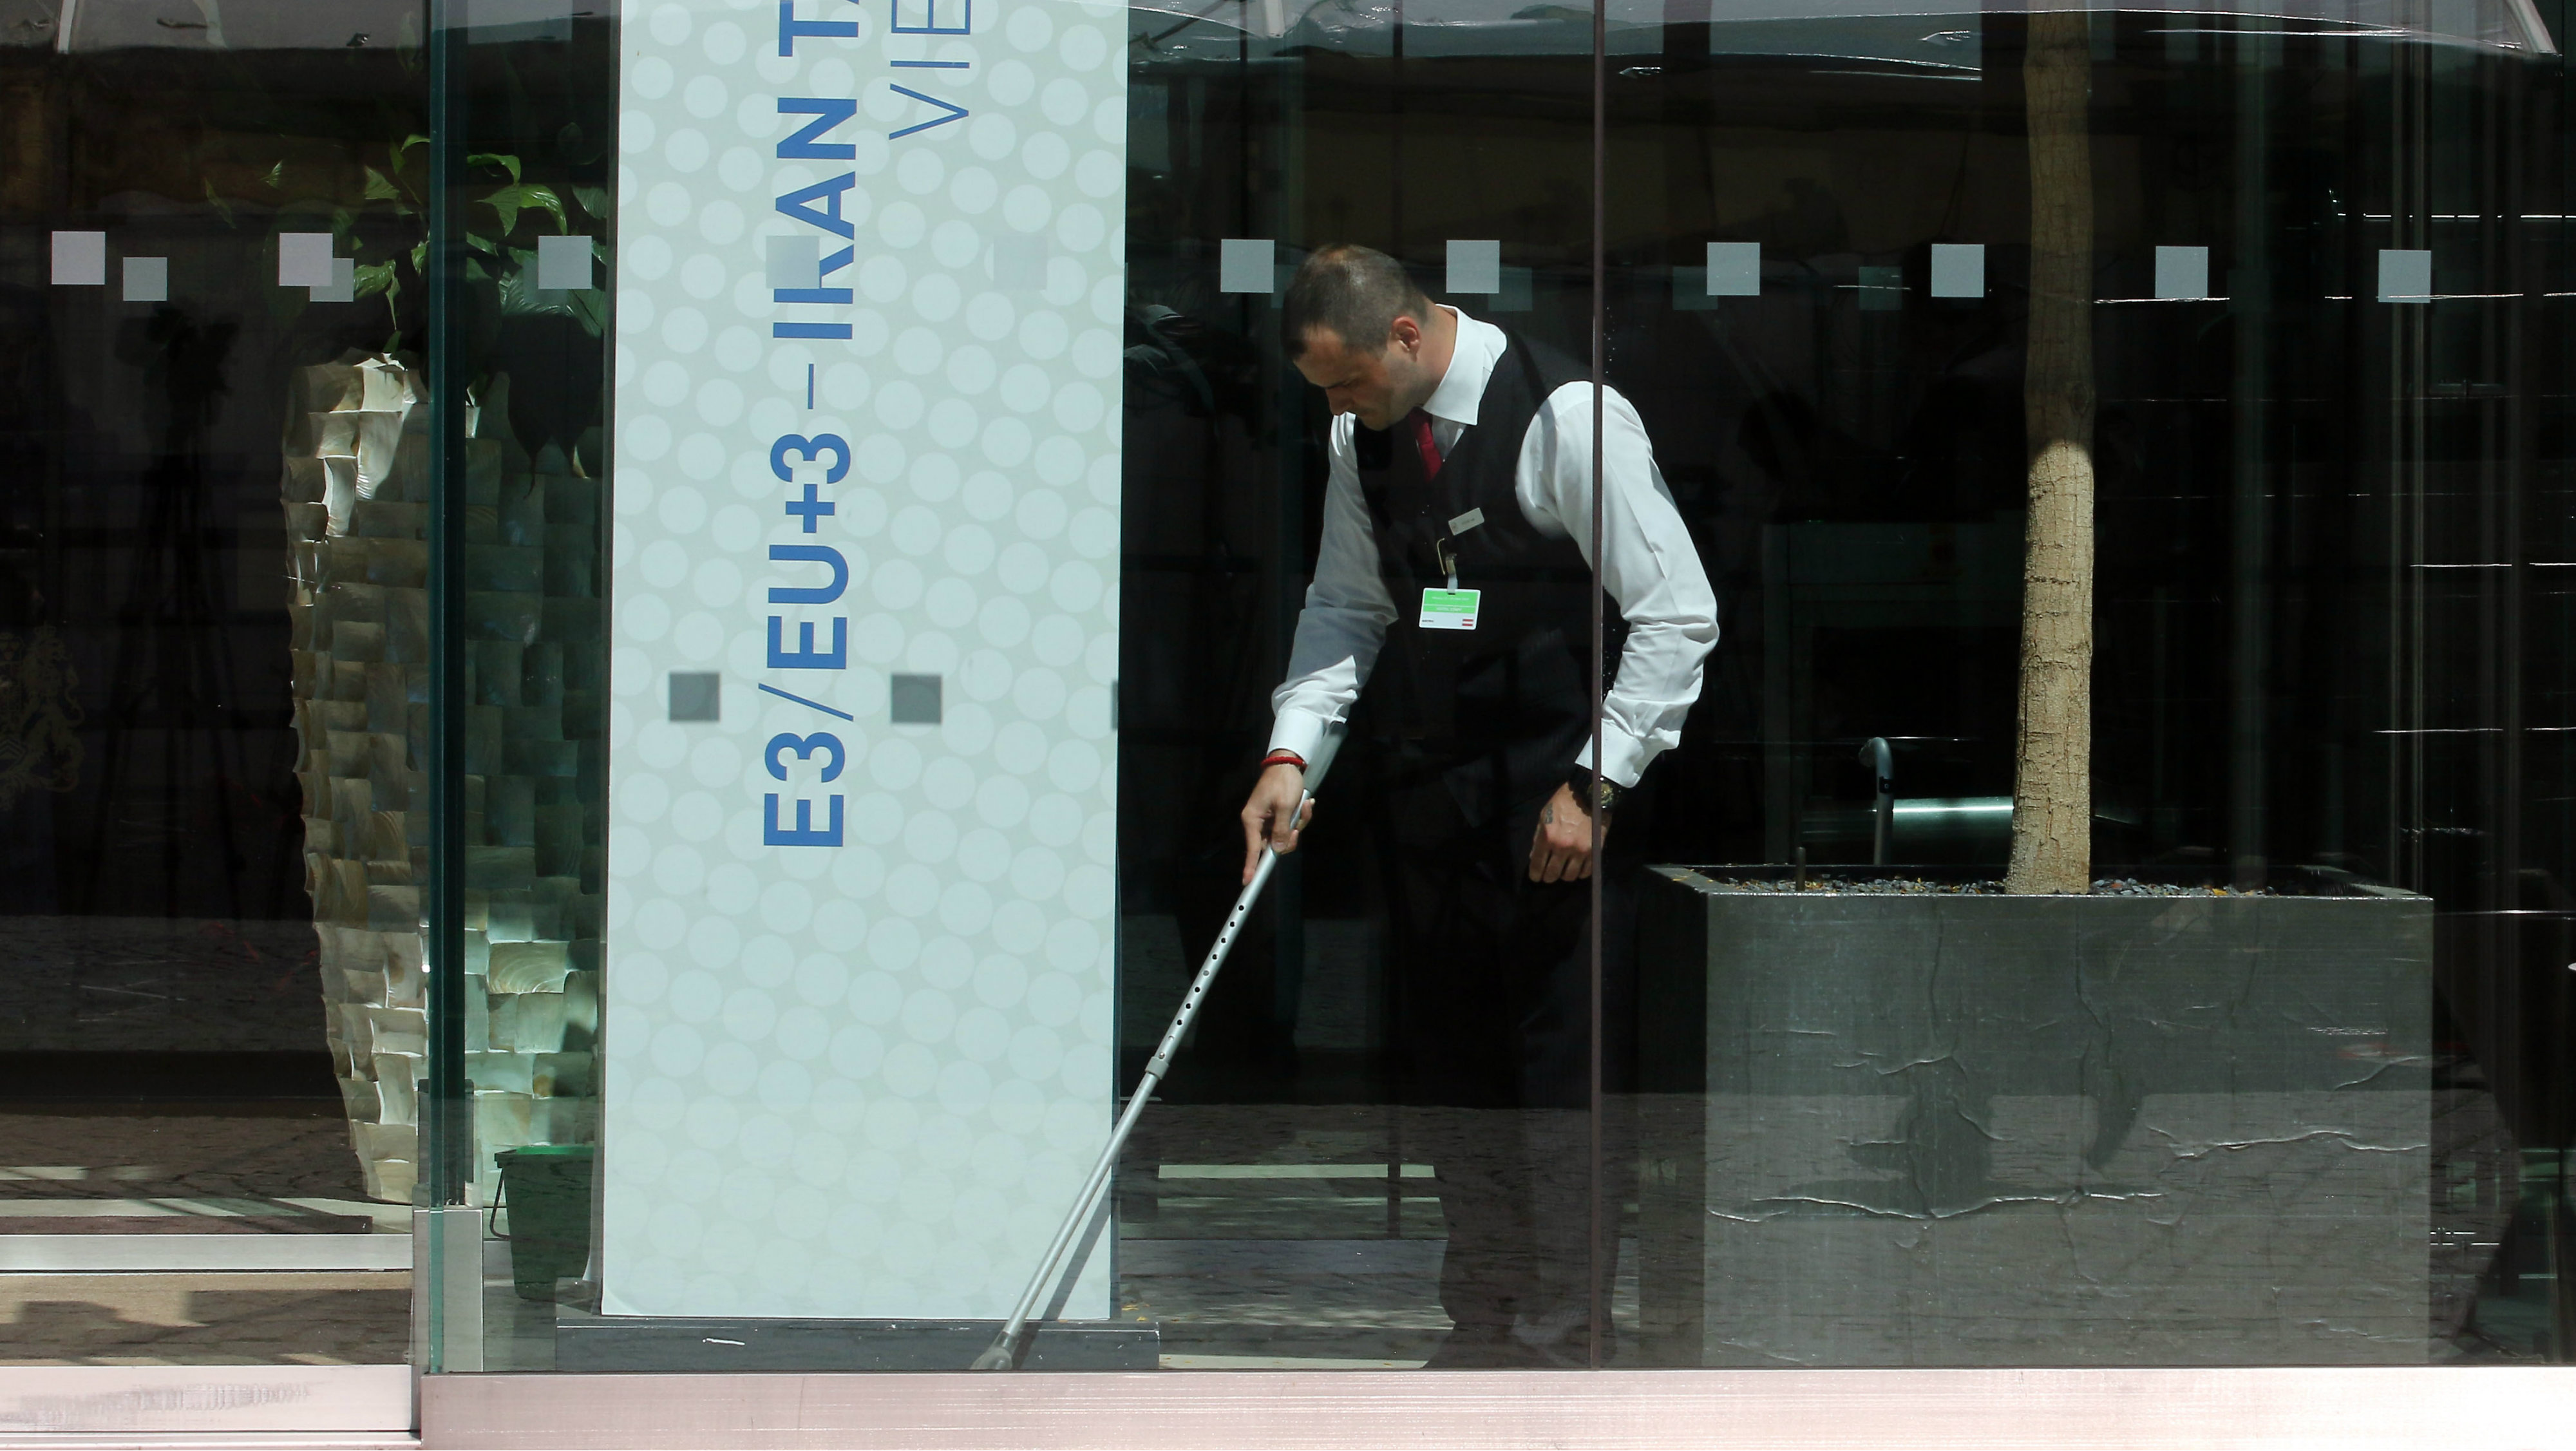 A man cleans the entrance of Palais Coburg where closed-door nuclear talks with Iran take place in Vienna, Austria, Saturday, July 11, 2015.